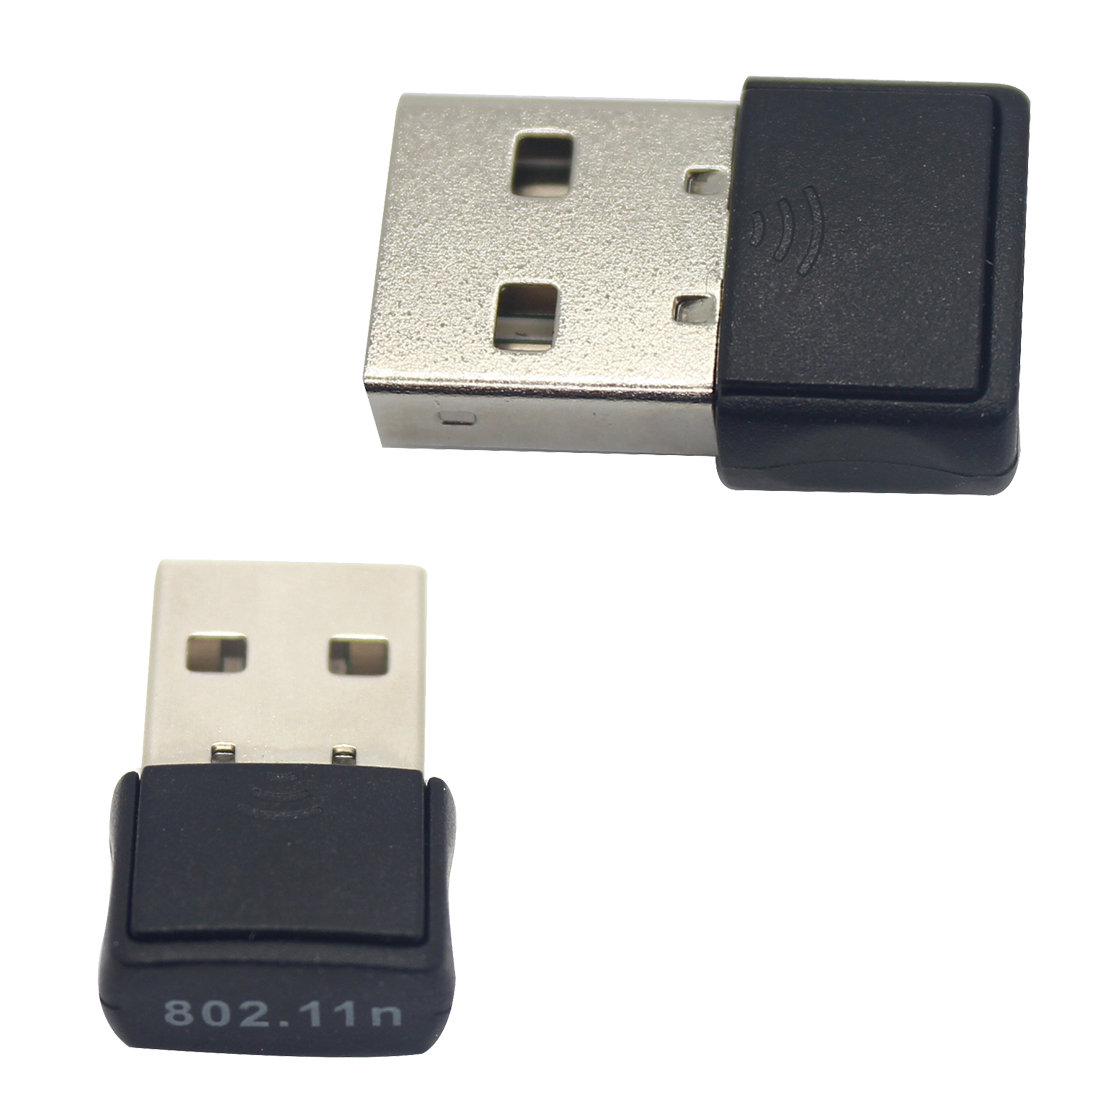 Etmakit Mini USB 2.0 bežični WiFi adapter 150Mbps USB adapter WiFi 802.11n bežična mrežna kartica Dongle Raspberry Pi B